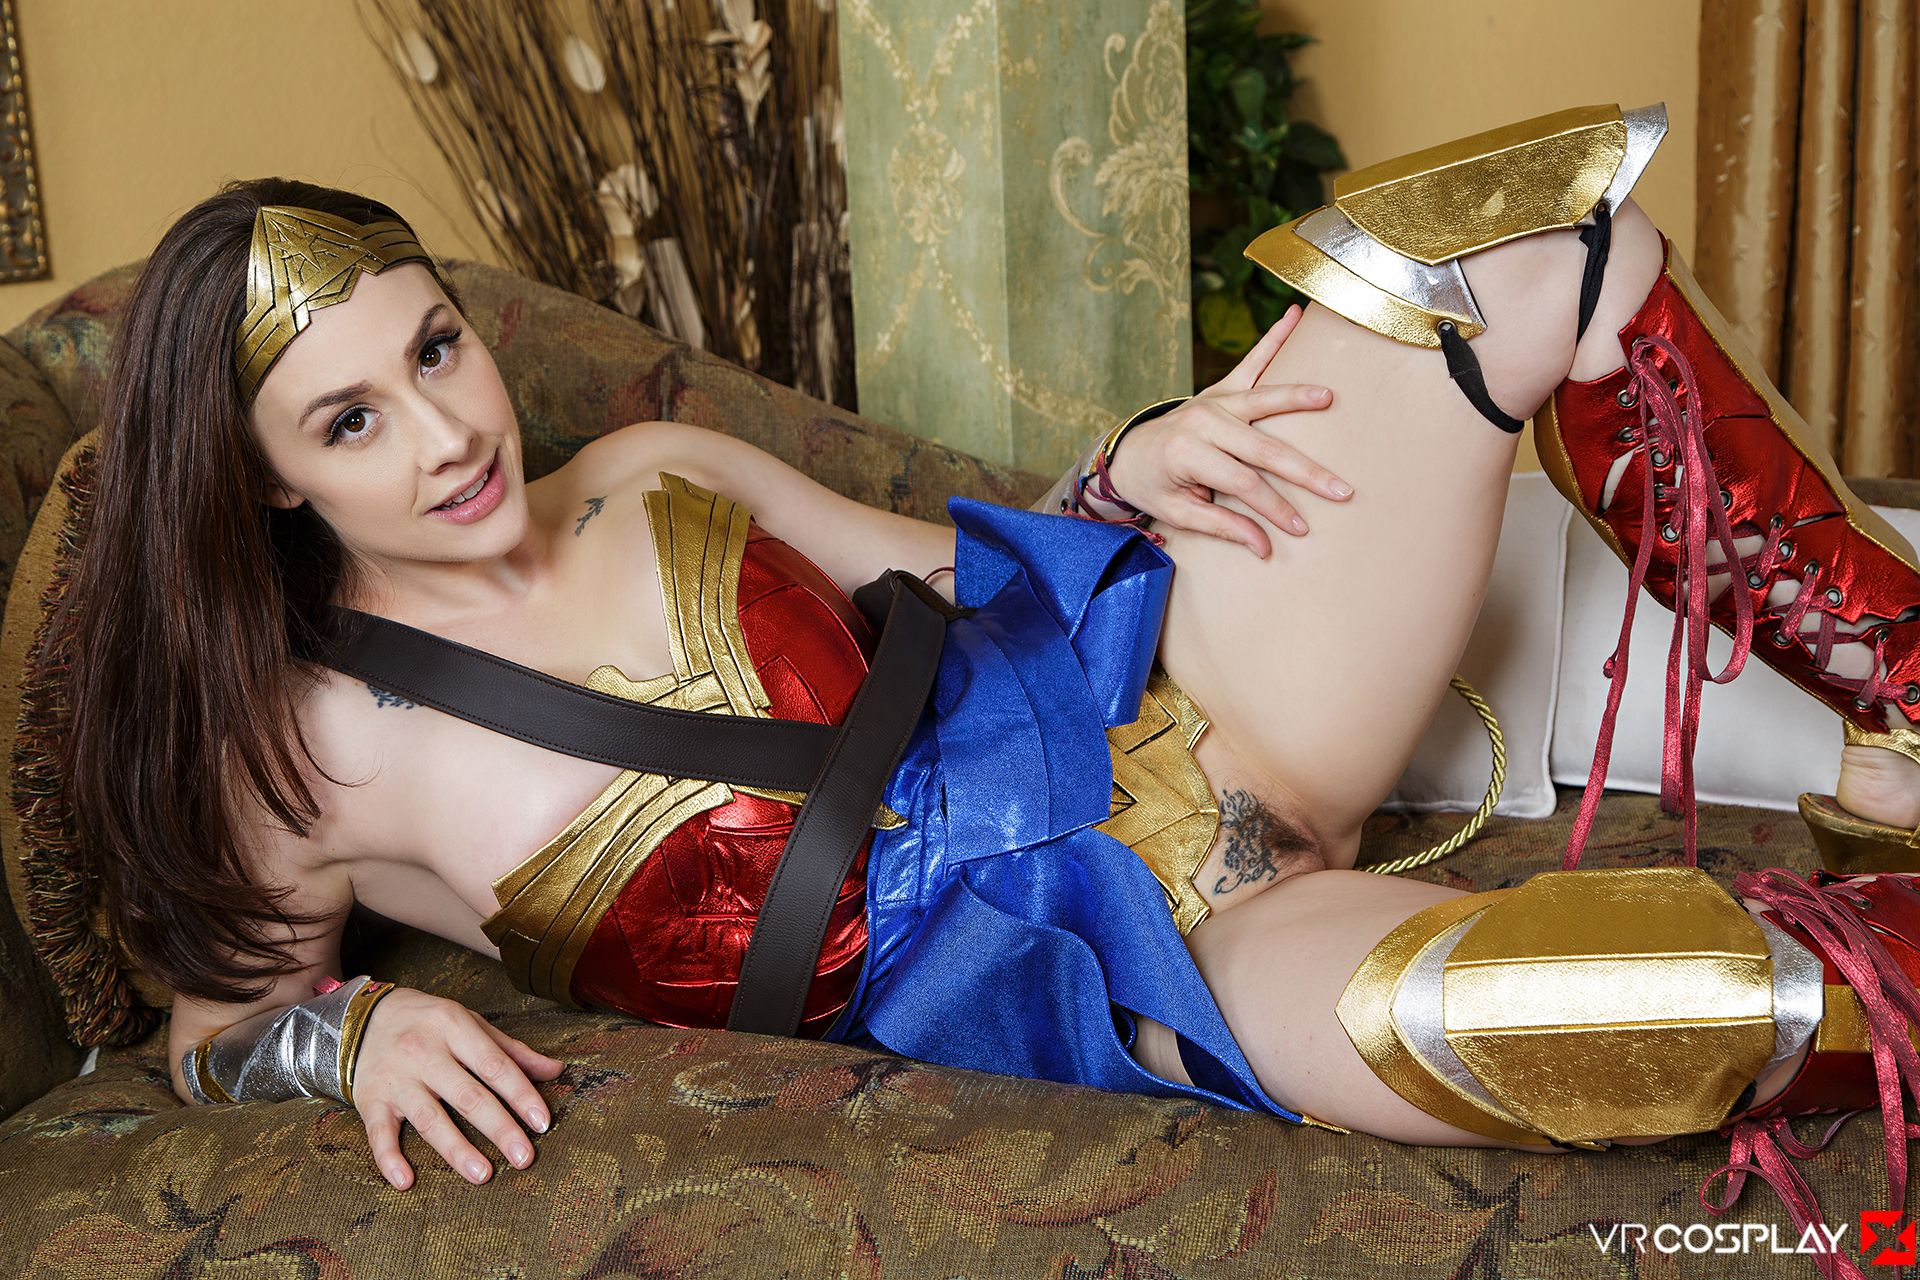 Dead R. recommend best of cosplay mujer maravilla